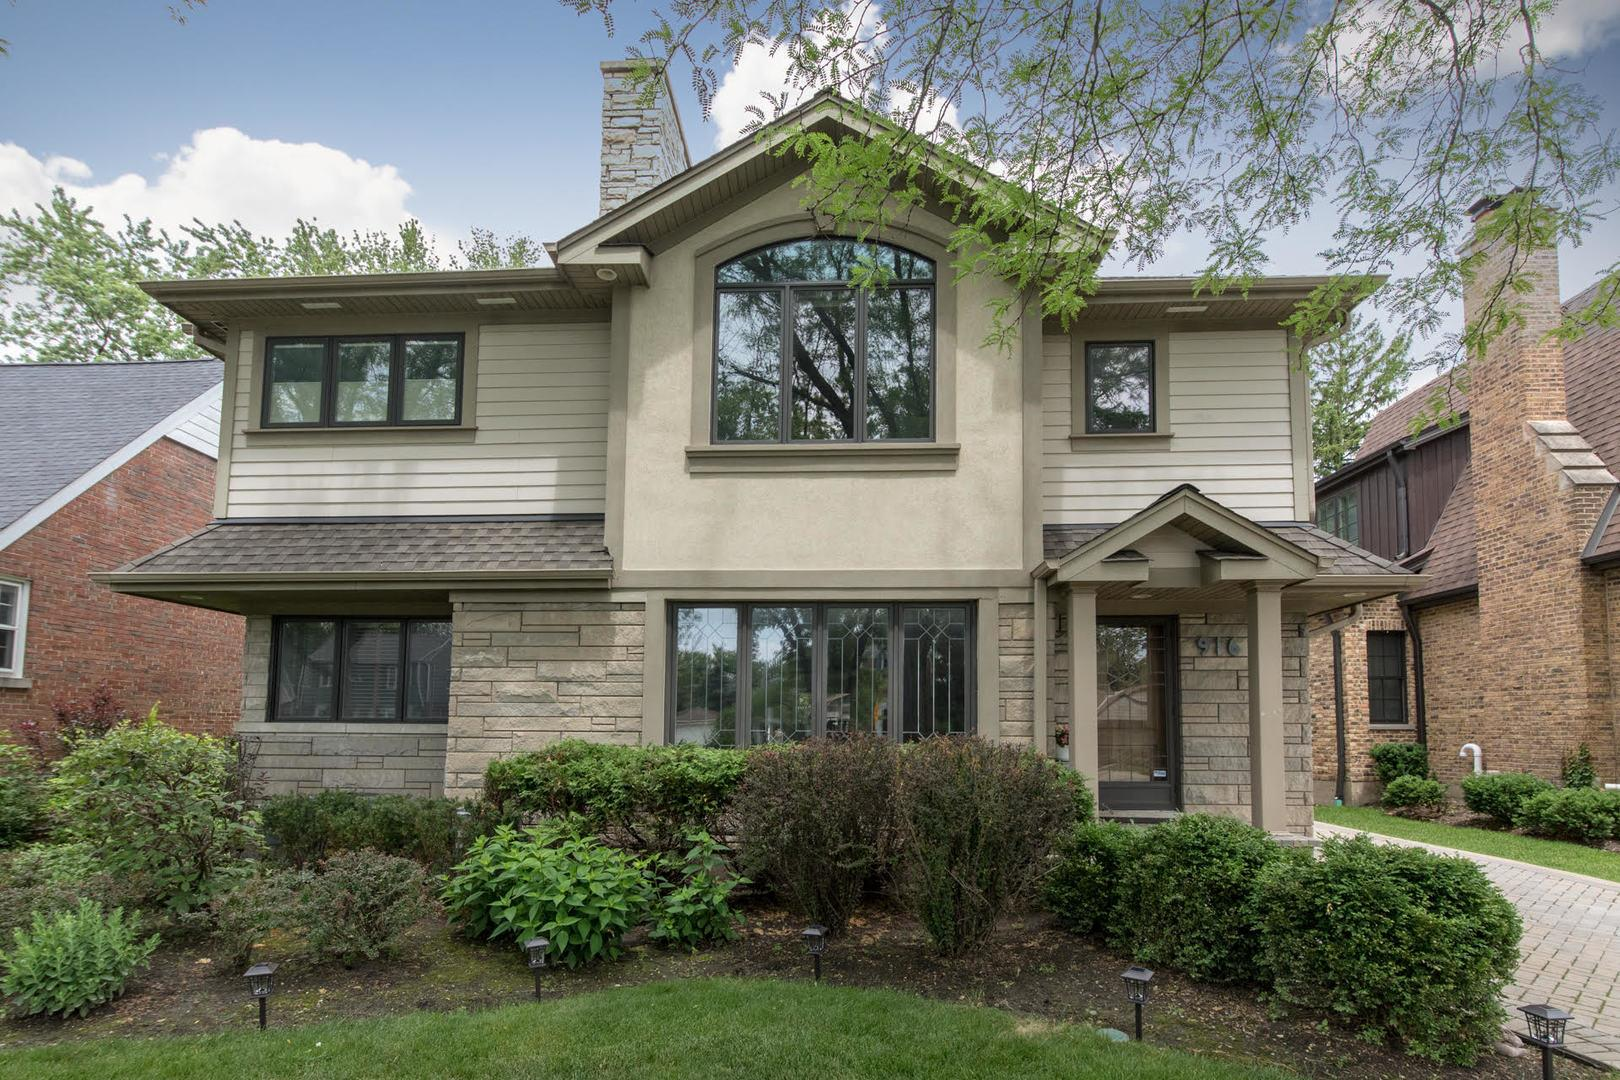 916 Saint James Place, Park Ridge, IL 60068 - #: 10759256